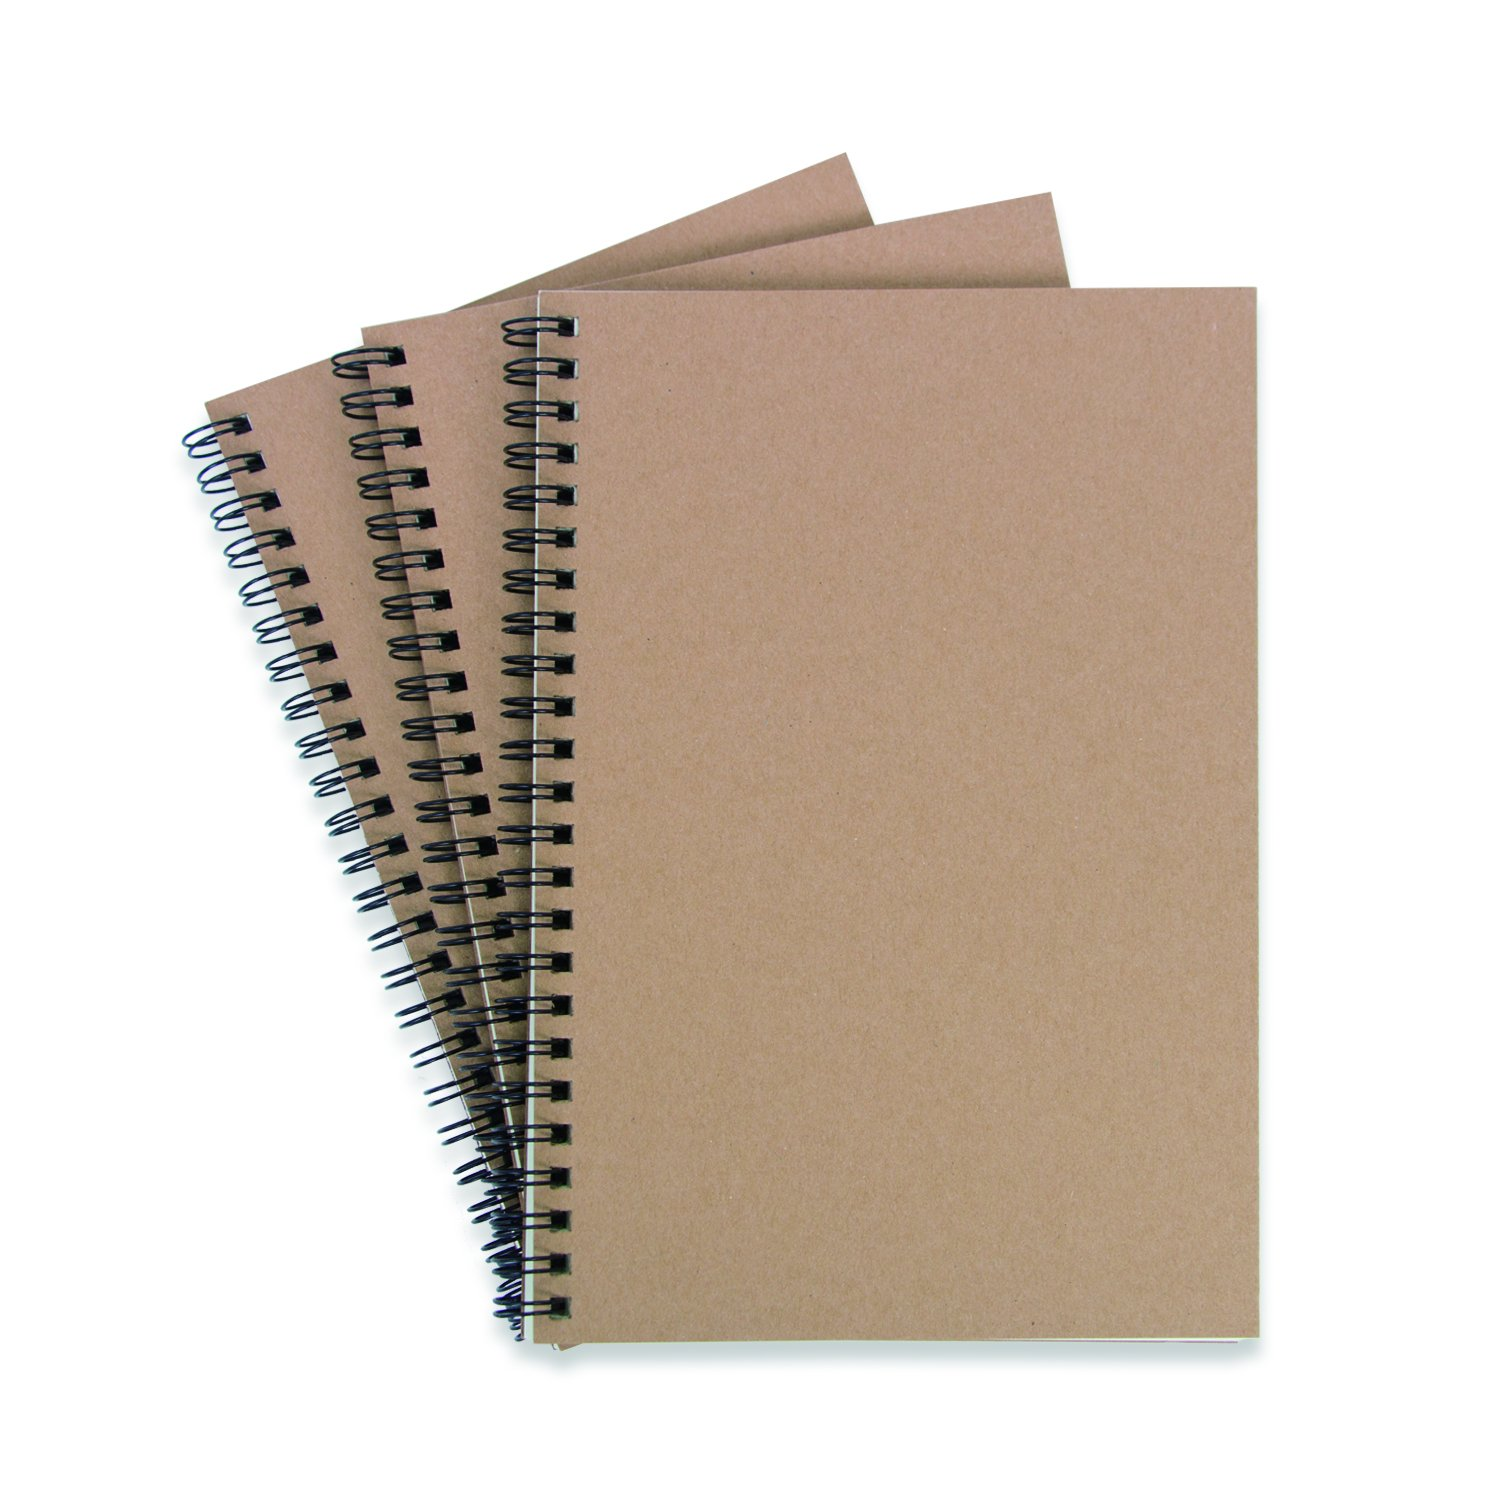 Kraft Paper Cover Notebooks Spiral Notebooks (A5 Size, Set of 3) (Cartwheel Double Iron Ring) by Luck'y stores (Image #1)